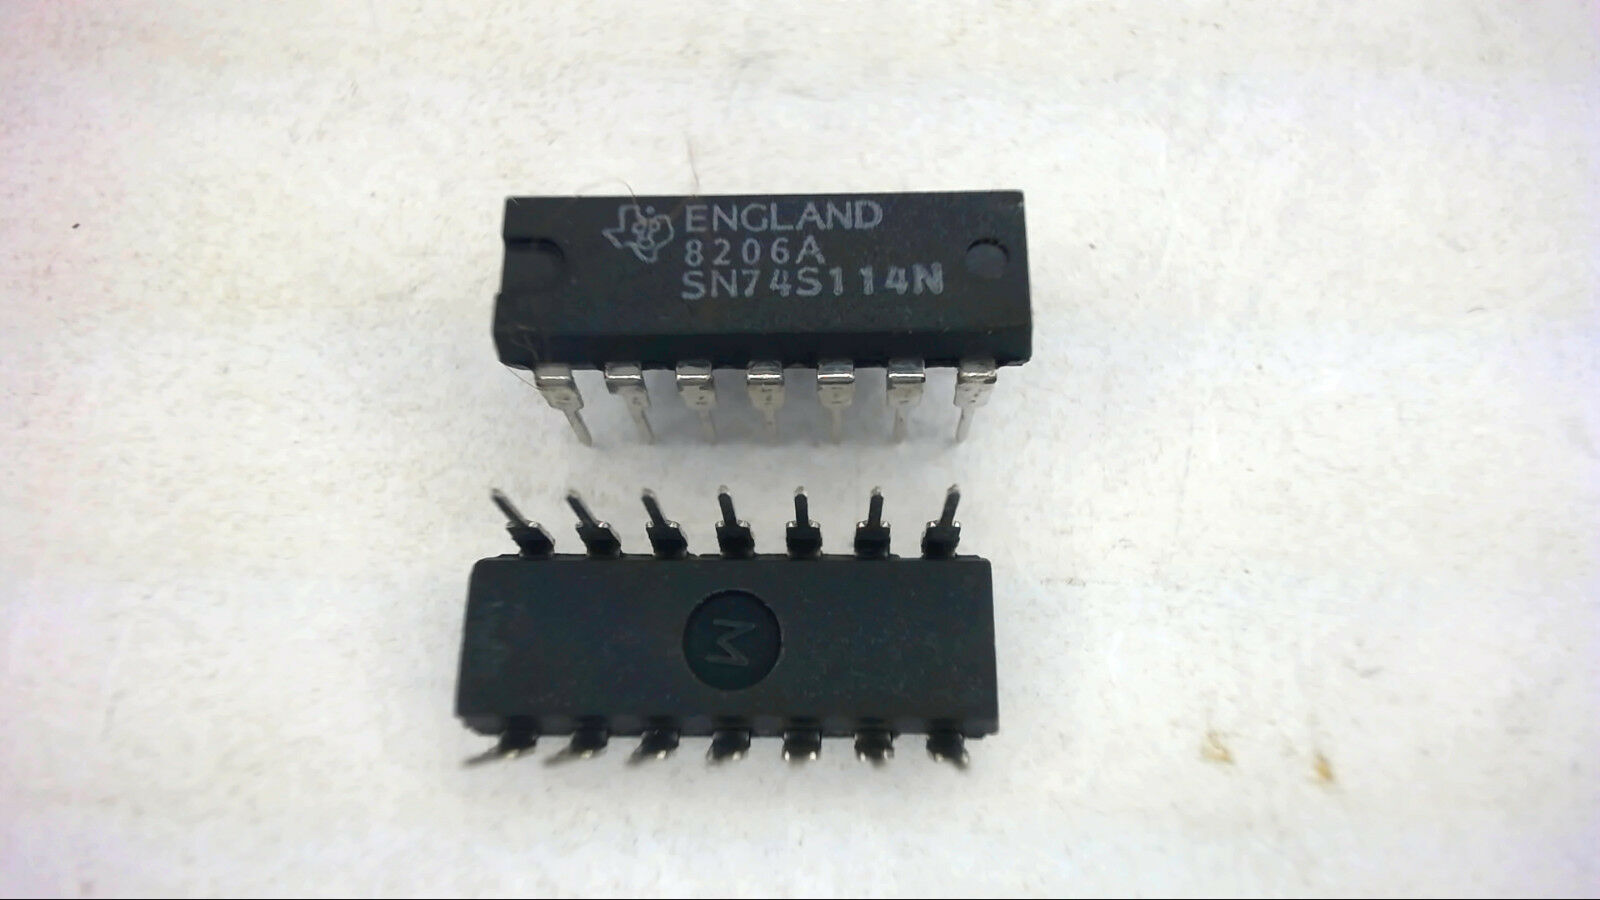 Texas Instruments Sn74s114n 14 Pin Dip Integrated Circuit 2 Ebay Ic Ne555 Ne555p 555 8 Timers New High Quality Norton Secured Powered By Verisign